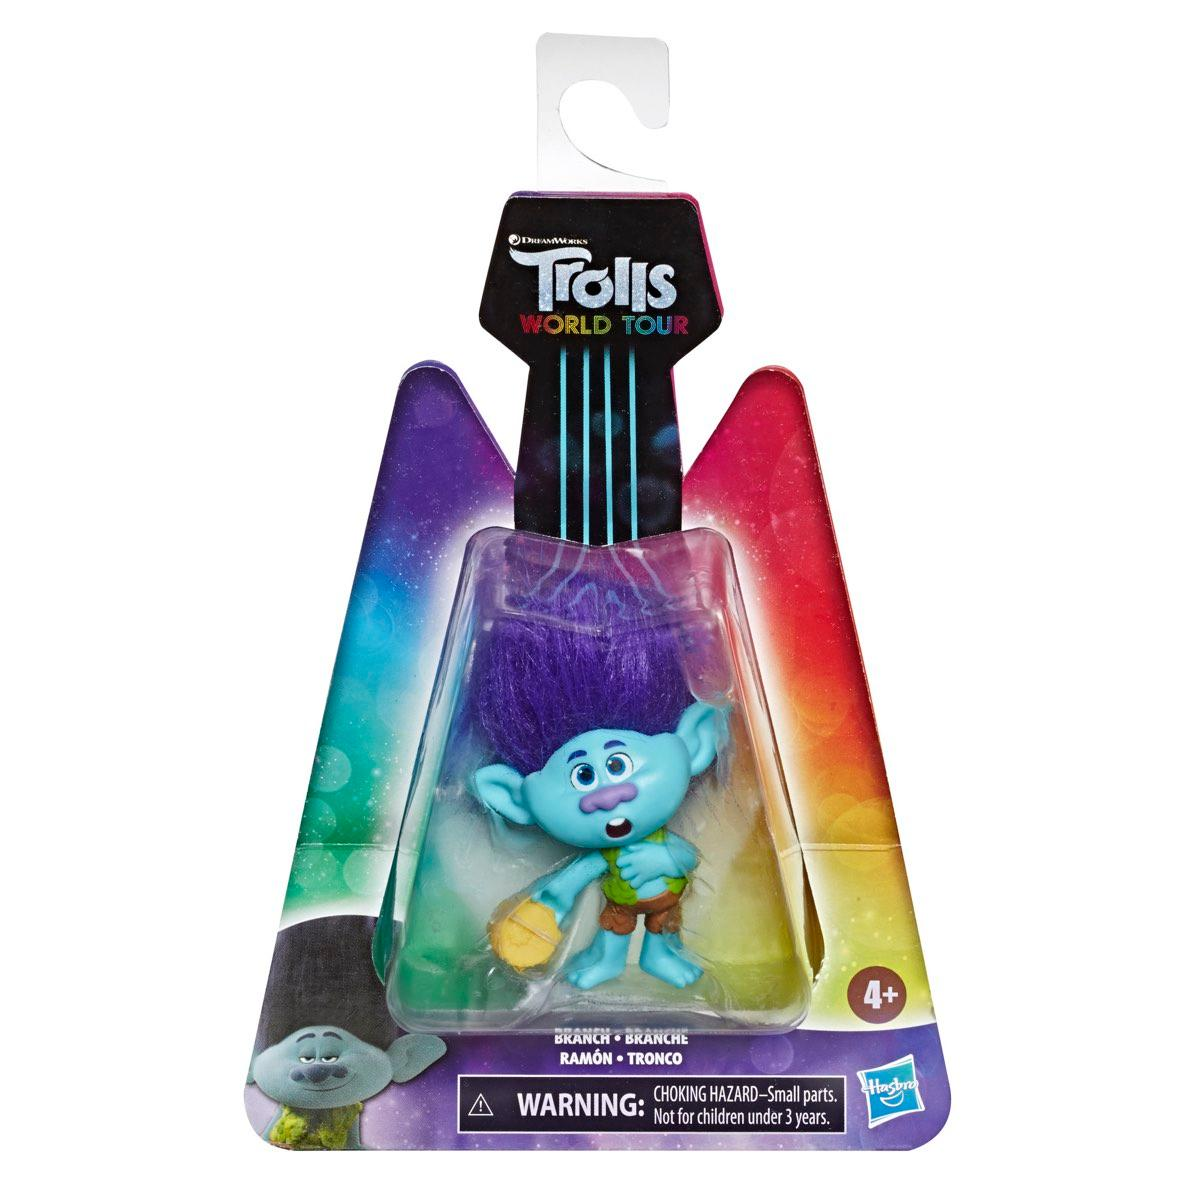 Trolls World Tour Branch Doll with Tambourine Accessory